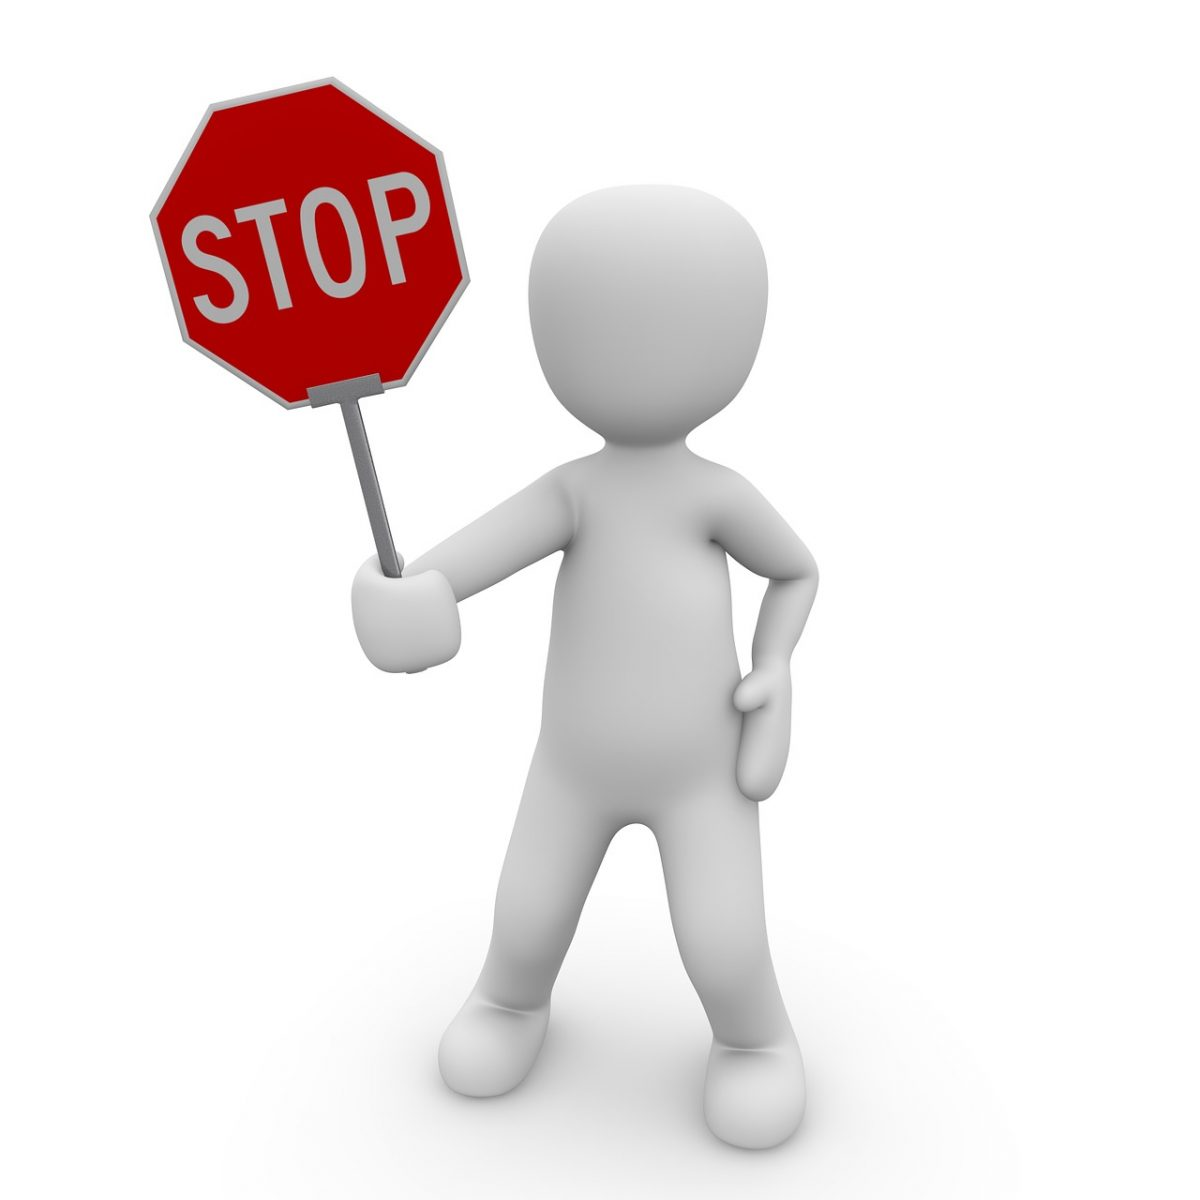 White clay-style person holding a stop sign